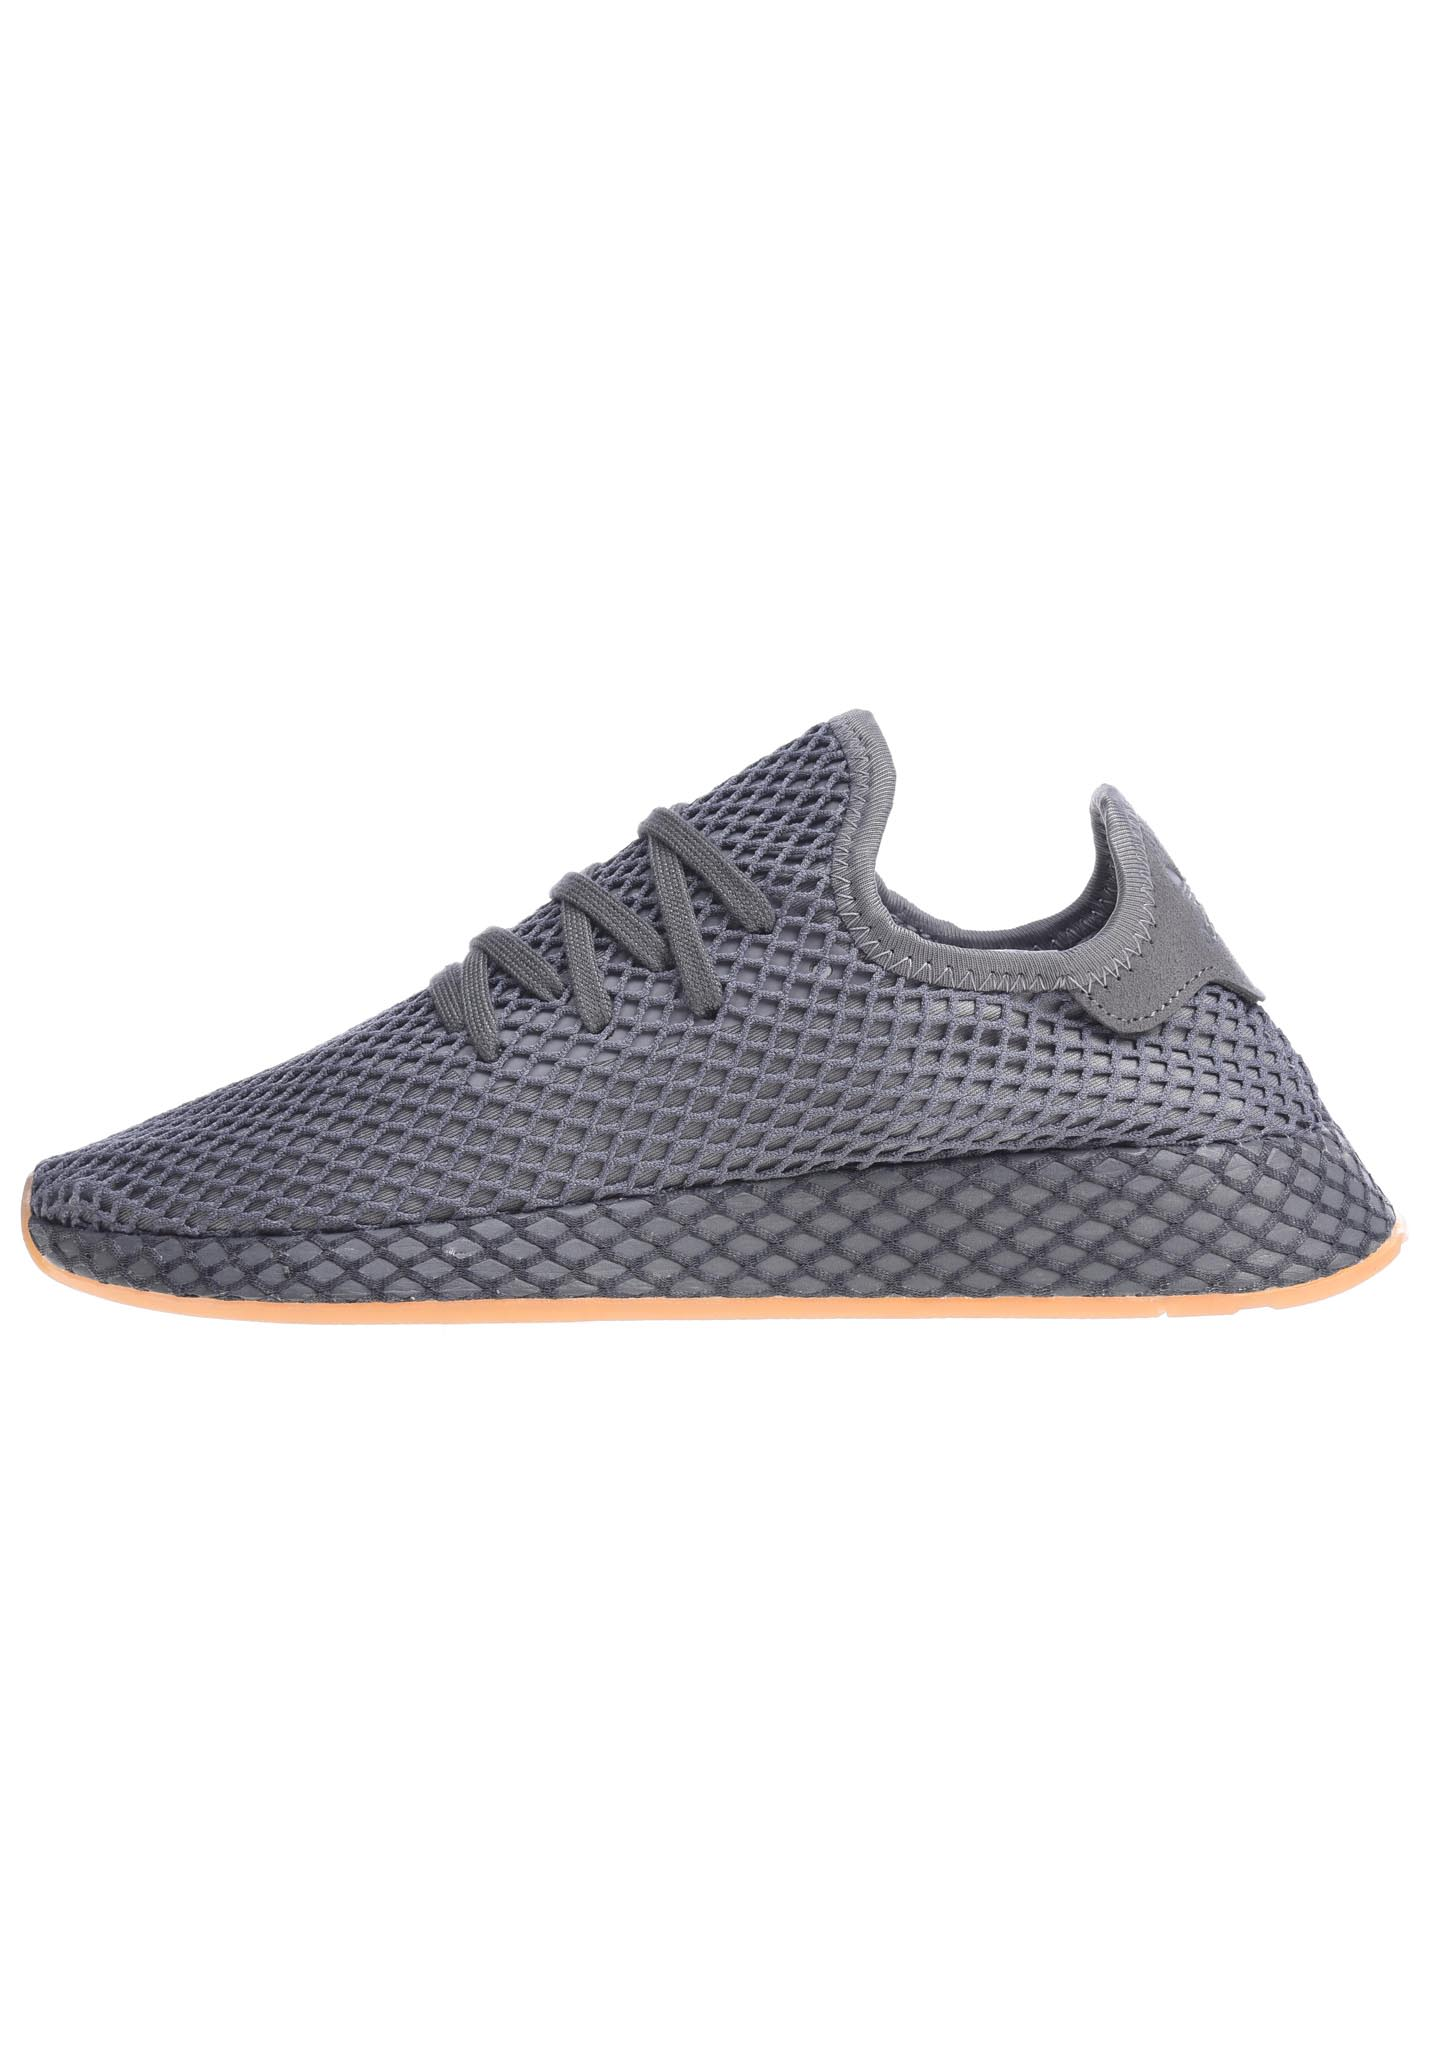 finest selection 38d6c 91dac ADIDAS ORIGINALS Deerupt Runner - Sneakers for Men - Grey - Planet Sports